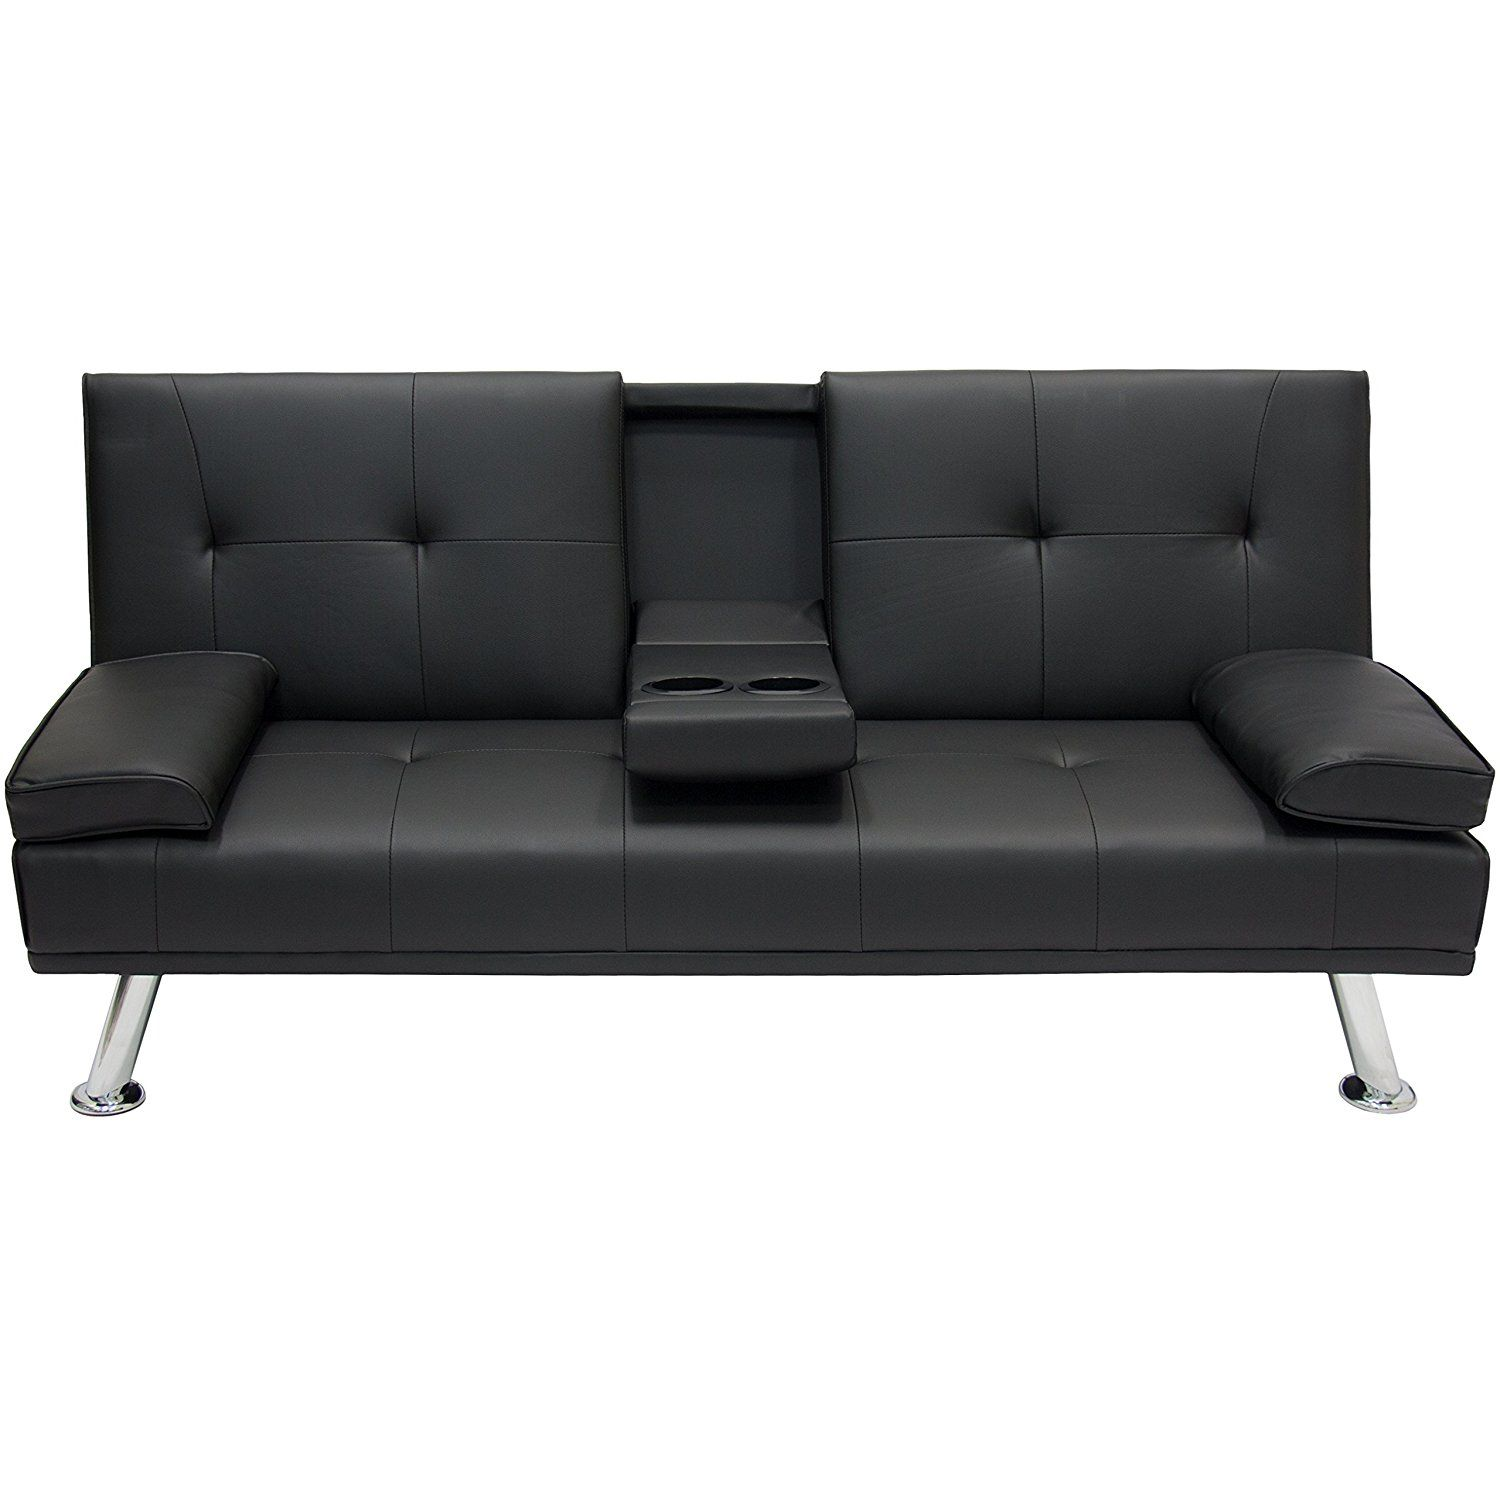 Amazon Sofa Bed Grey Amazon Entertainment Furniture Futon Sofa Bed Fold Up Down